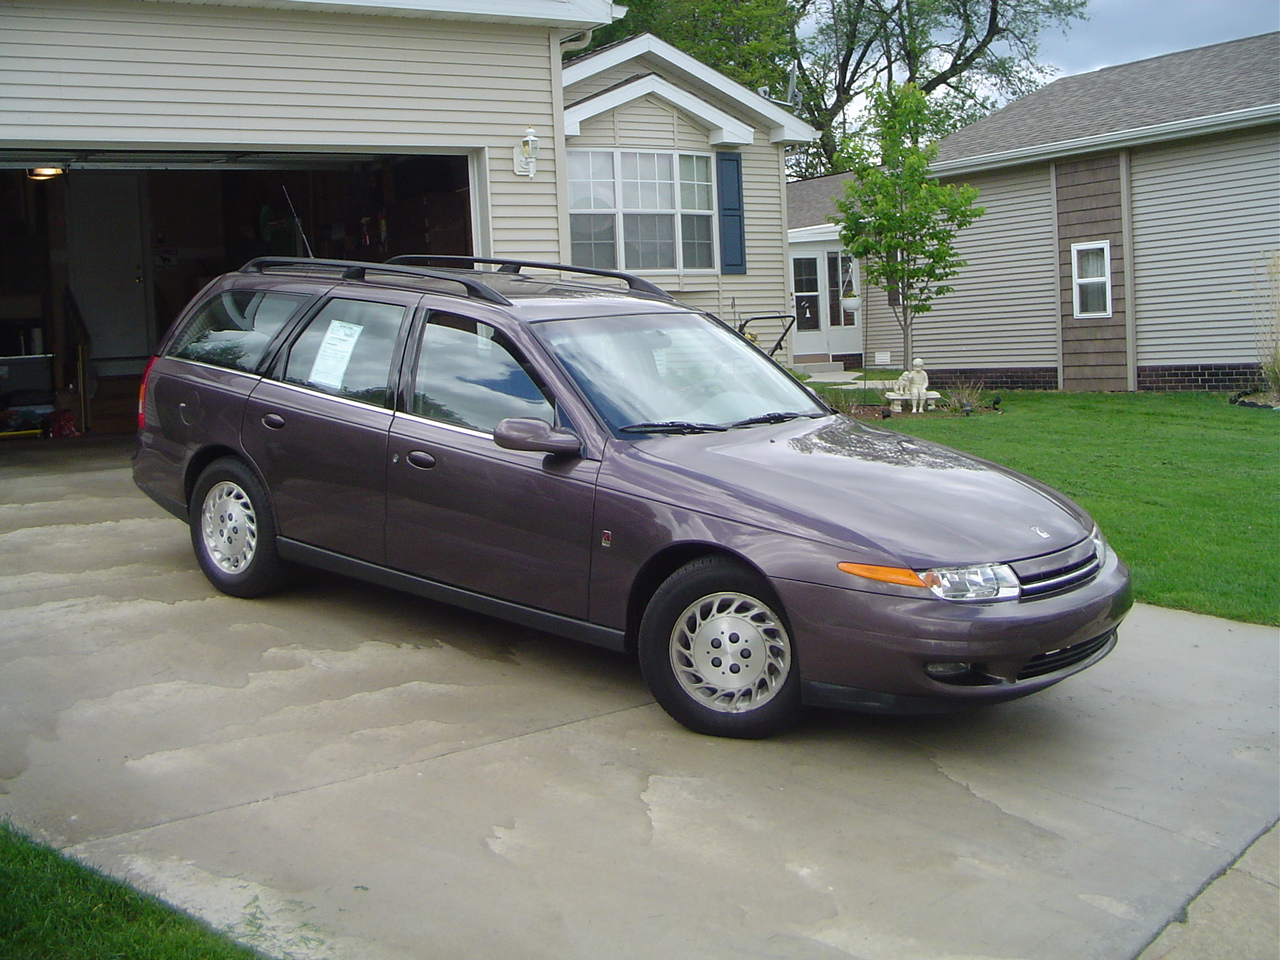 2000 Saturn S-Series 4 Dr SW2 Wagon picture